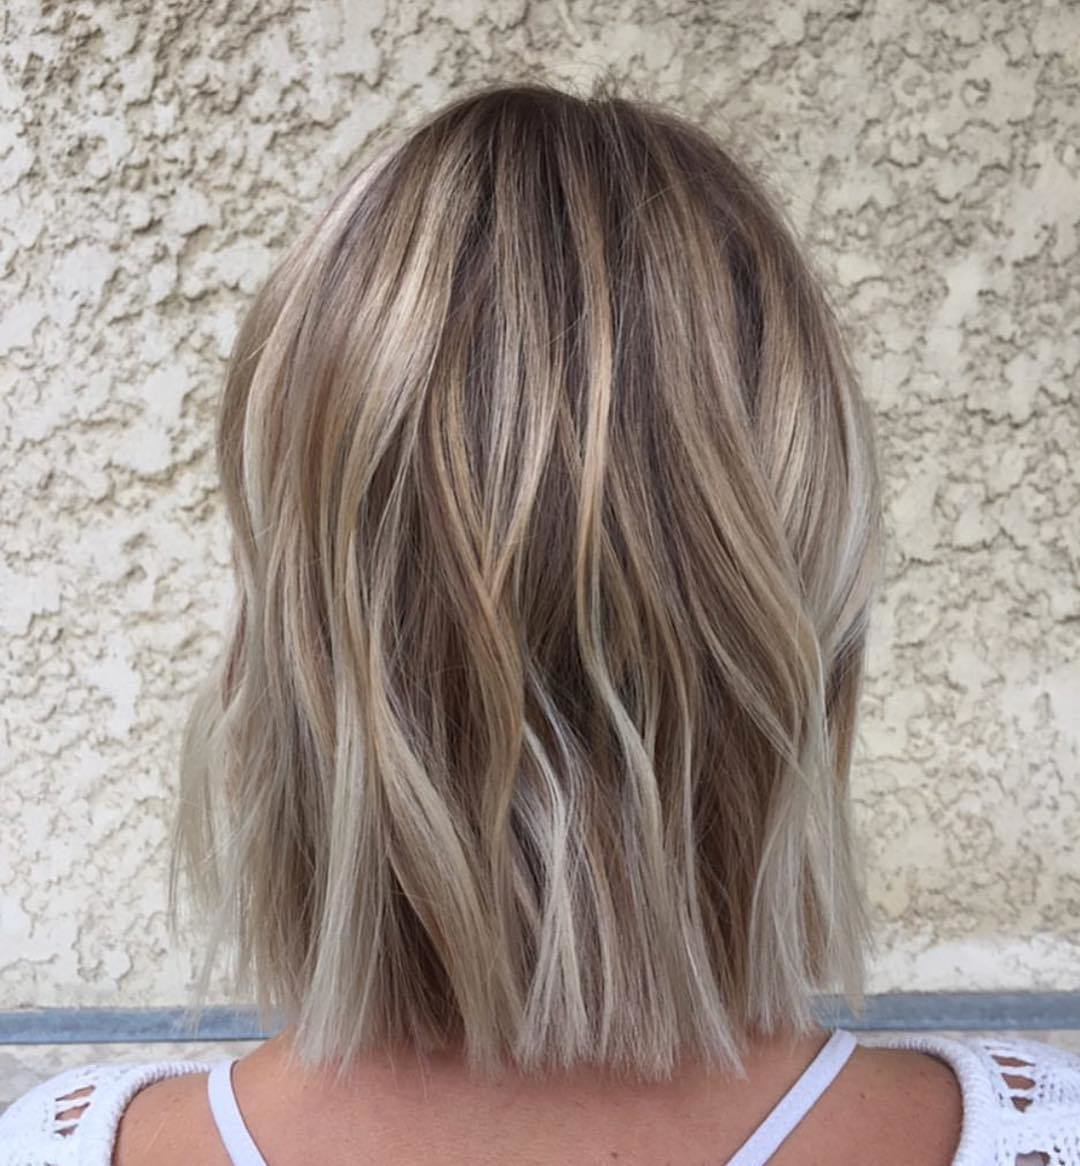 New 10 Balayage Ombre Hair Styles For Shoulder Length Hair Women Haircut 2019 Ideas With Pictures